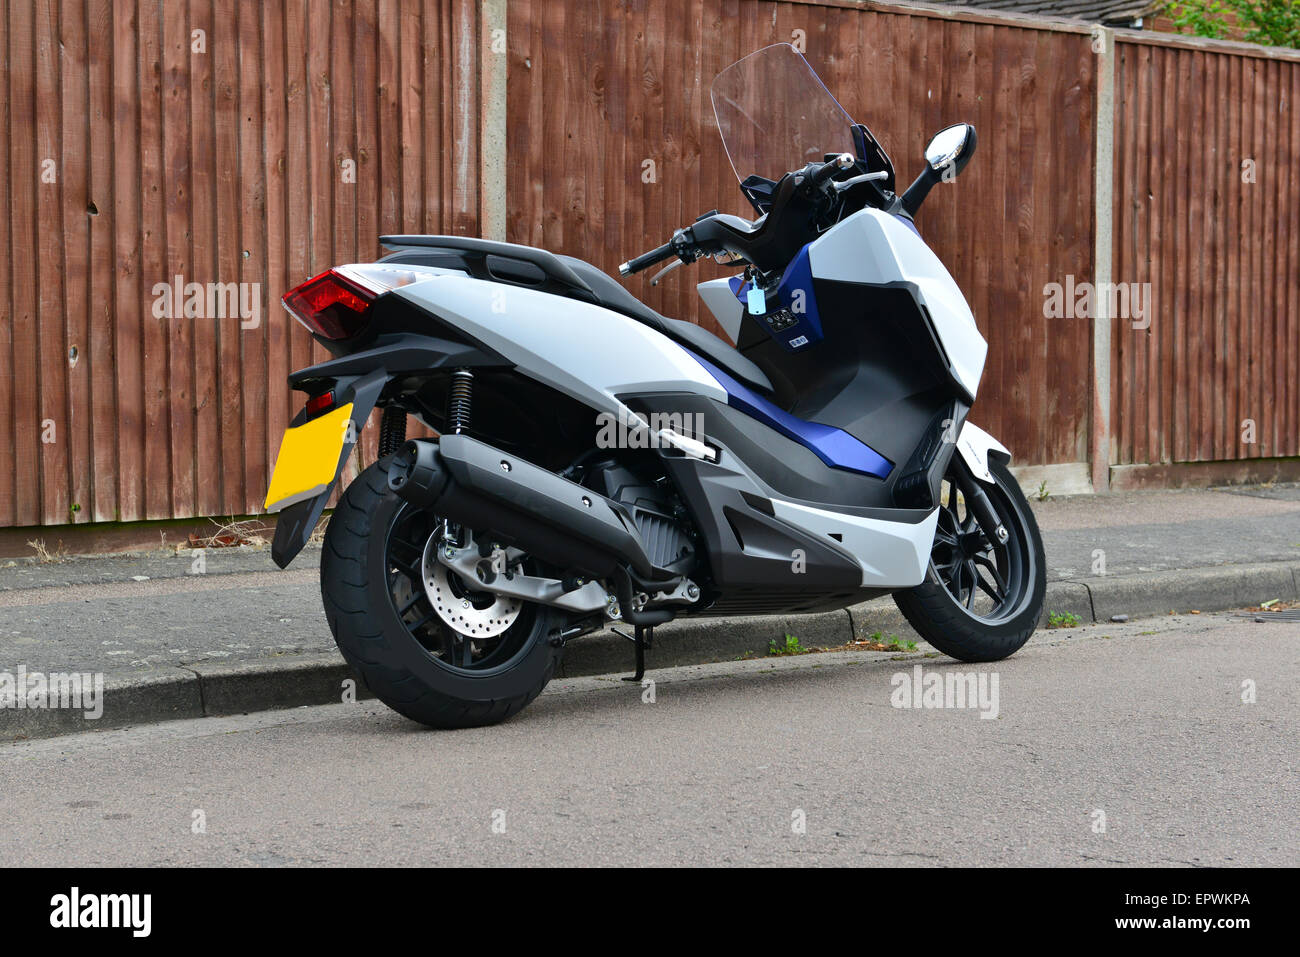 honda forza 125 scooter stock photo royalty free image 82928226 alamy. Black Bedroom Furniture Sets. Home Design Ideas